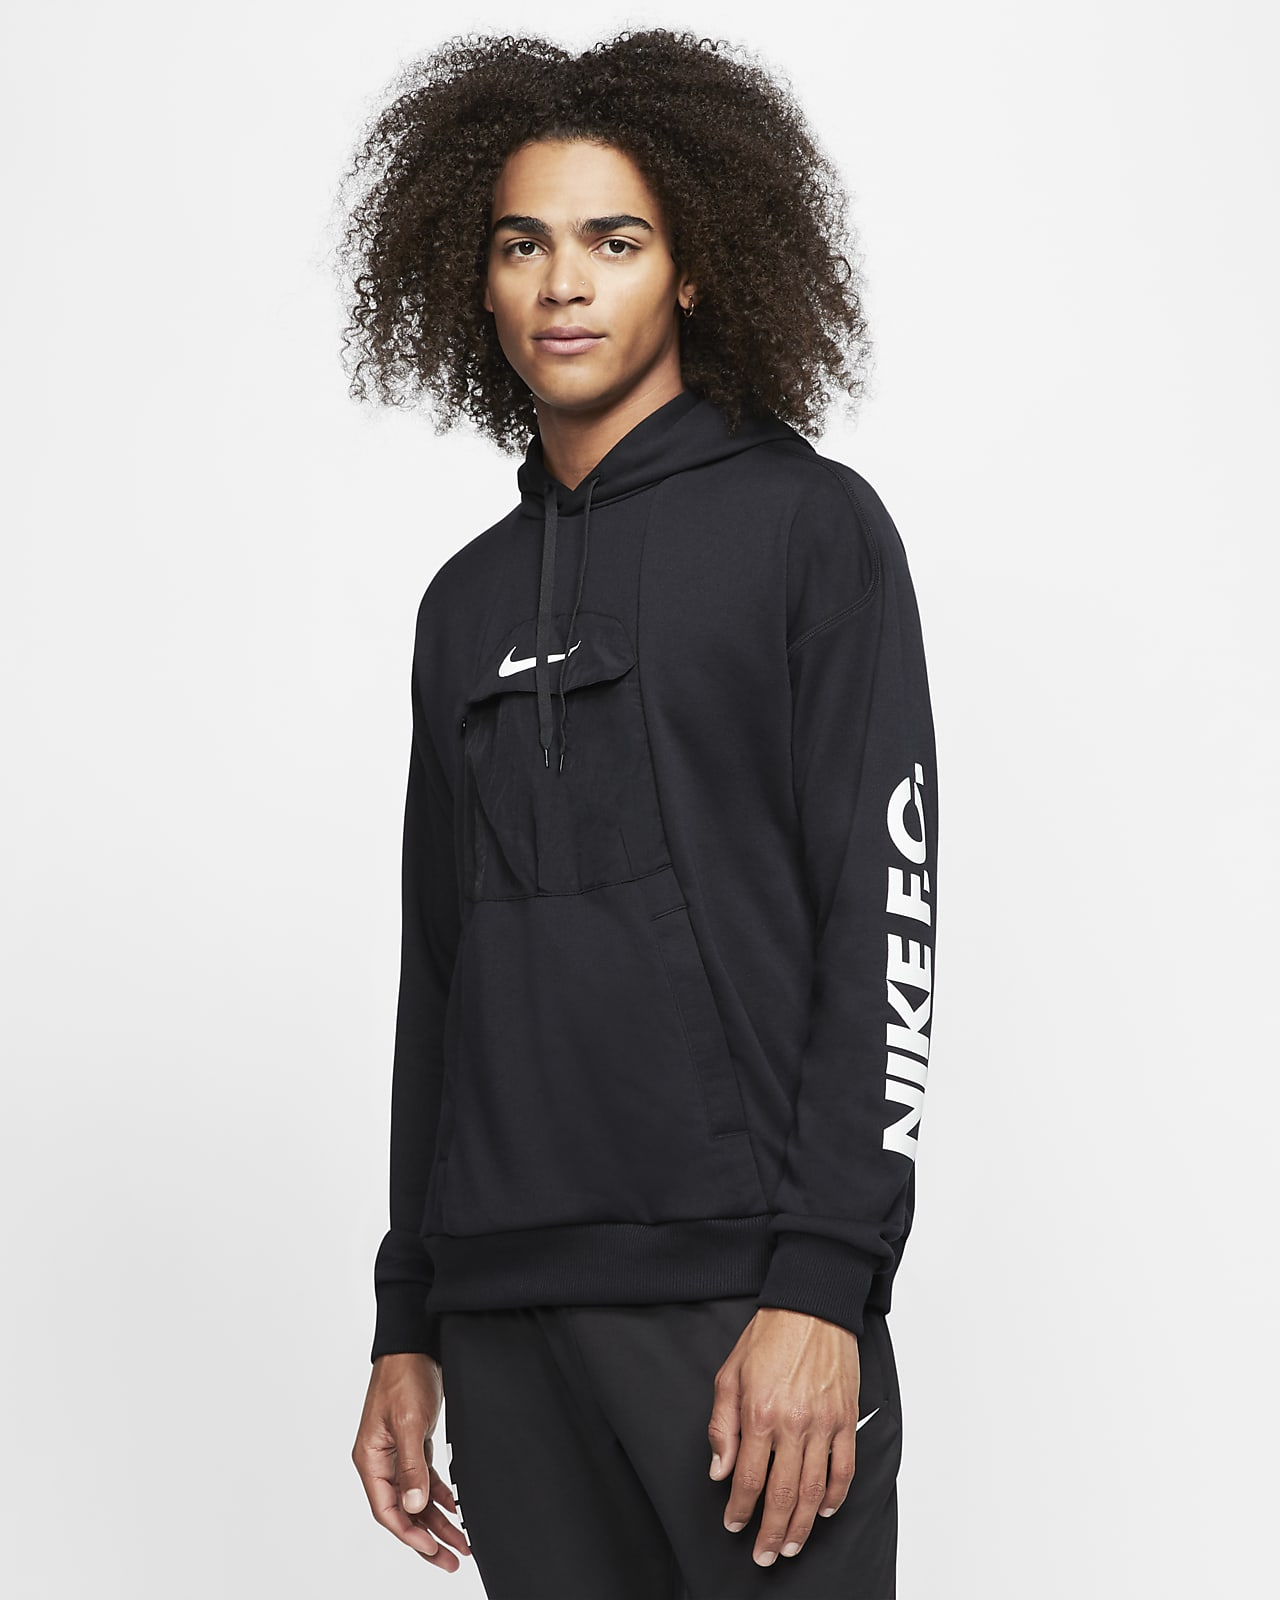 Sweat à capuche de football Nike F.C. pour Homme